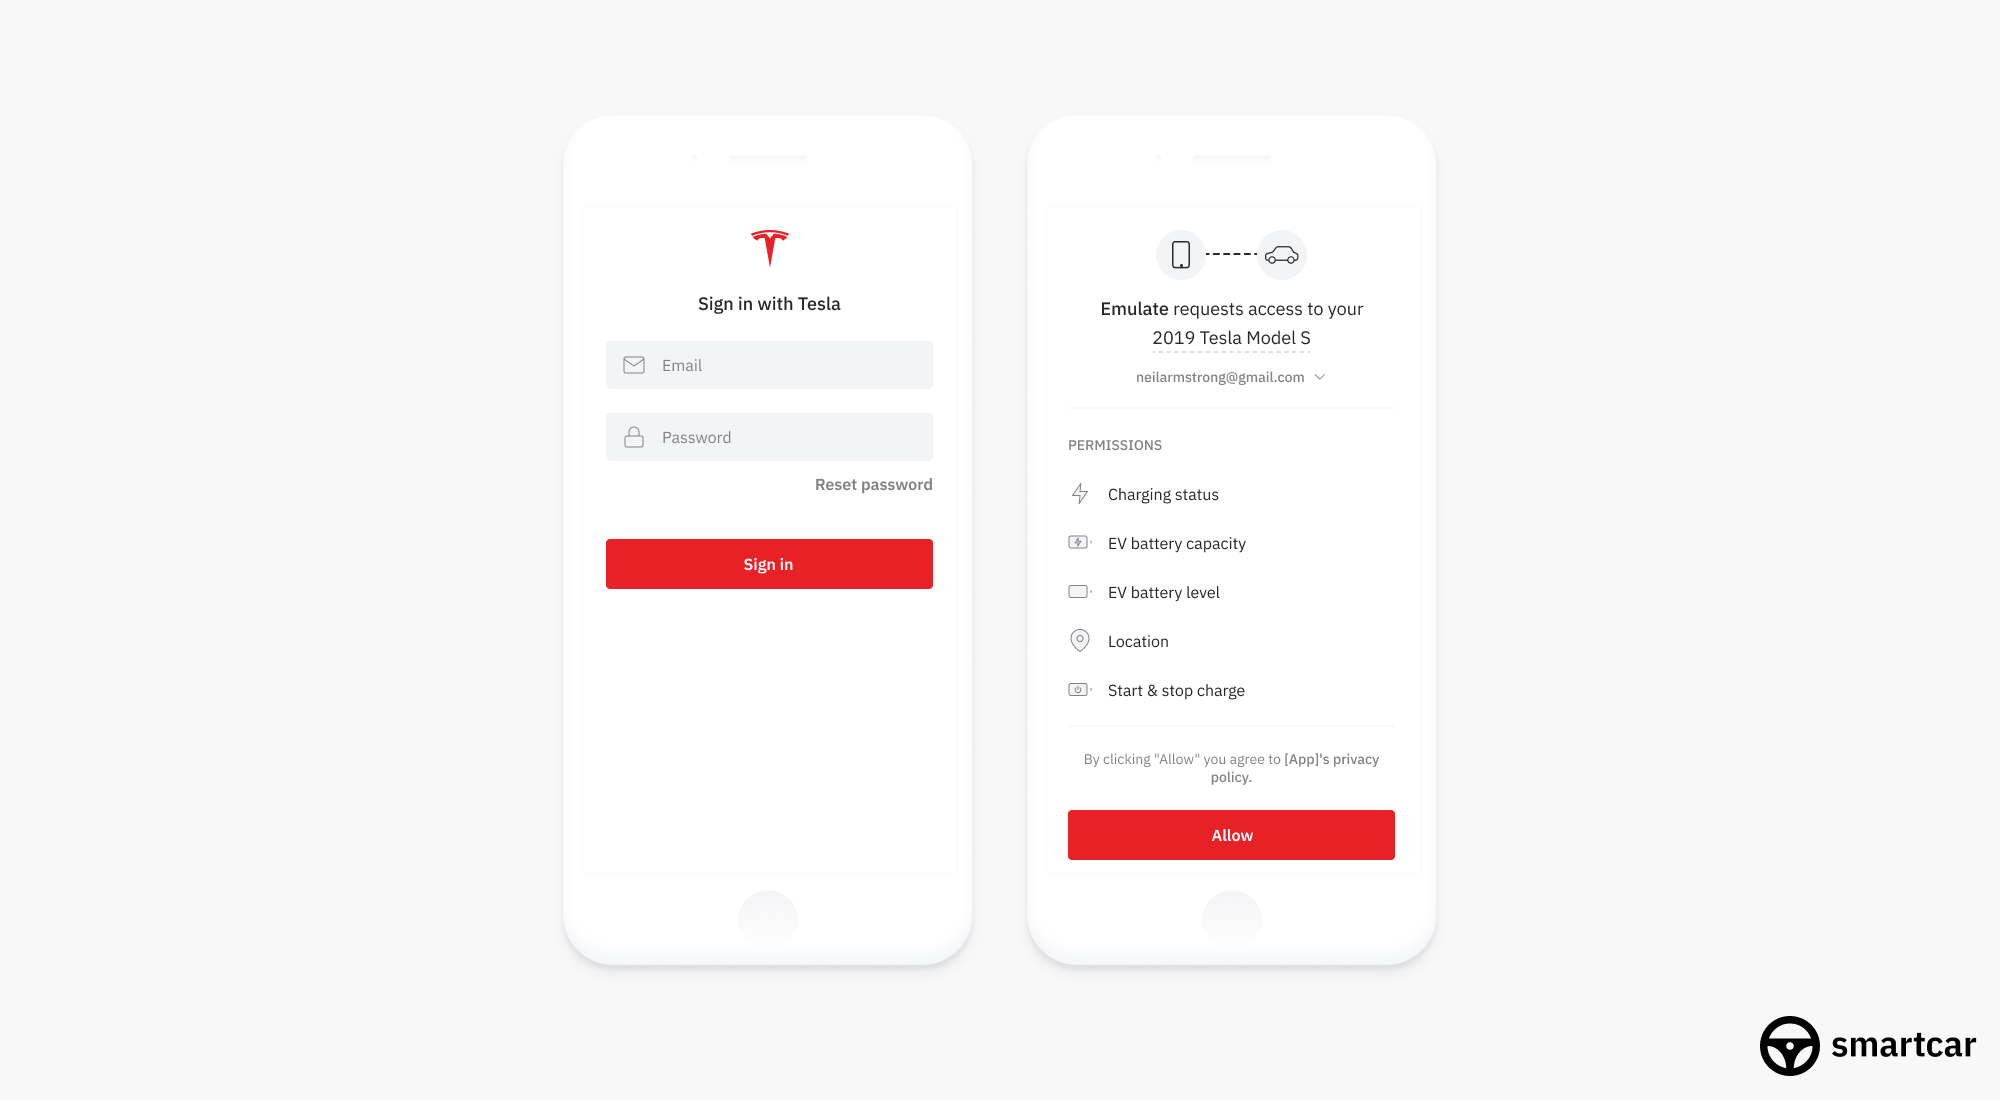 Two smartphone screens showing an interface that prompt the user to log in with their Tesla account and to give Emulate access to read the charging status, read the EV battery capacity, read the EV battery level, read the location, and start and stop charging the user's vehicle.